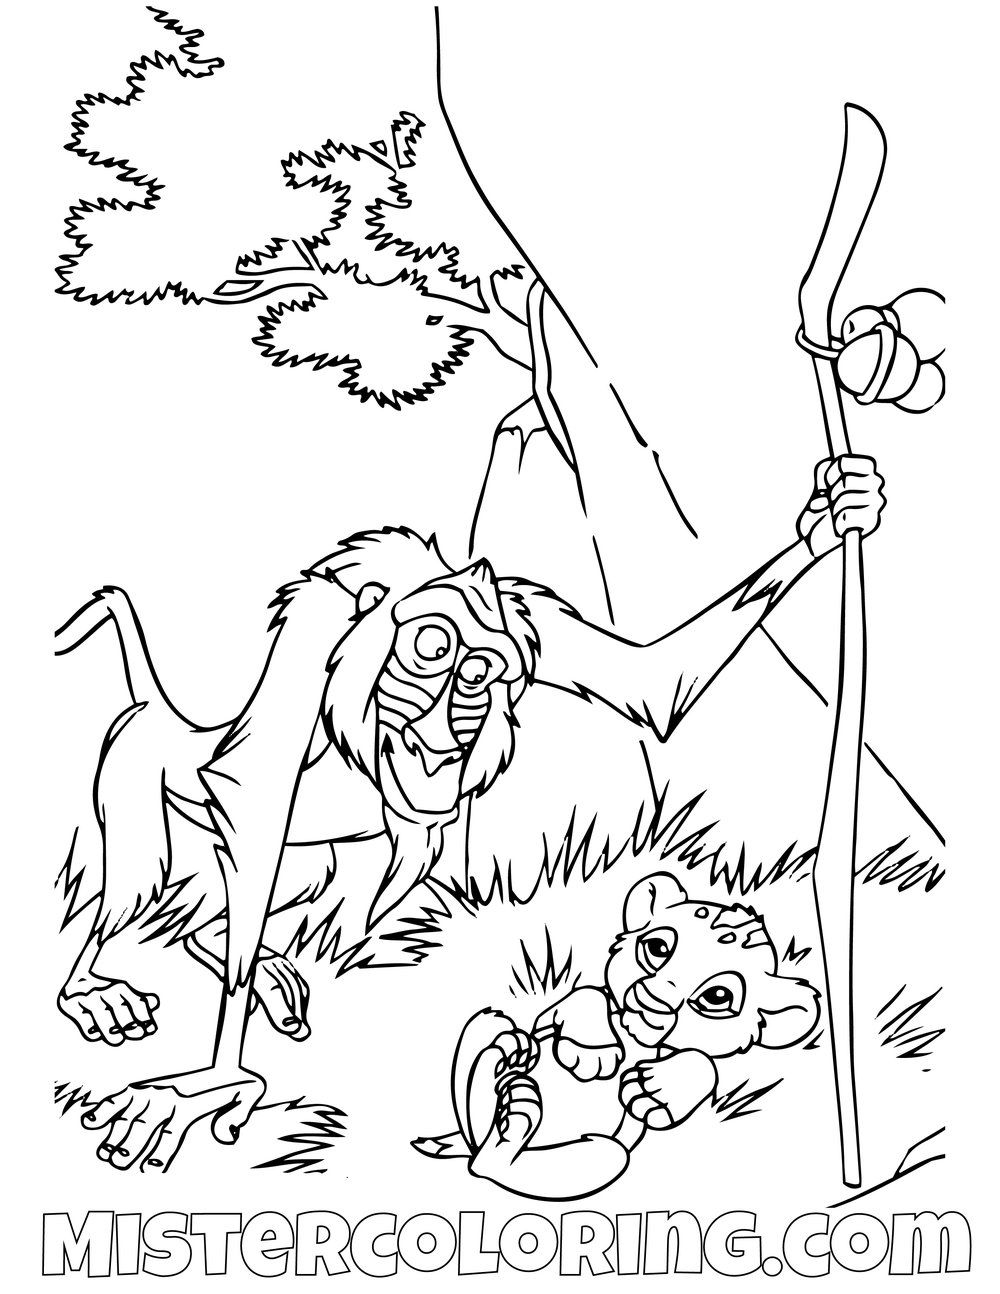 Idea By Mister Cijo On The Lion King Coloring Pages For Kids